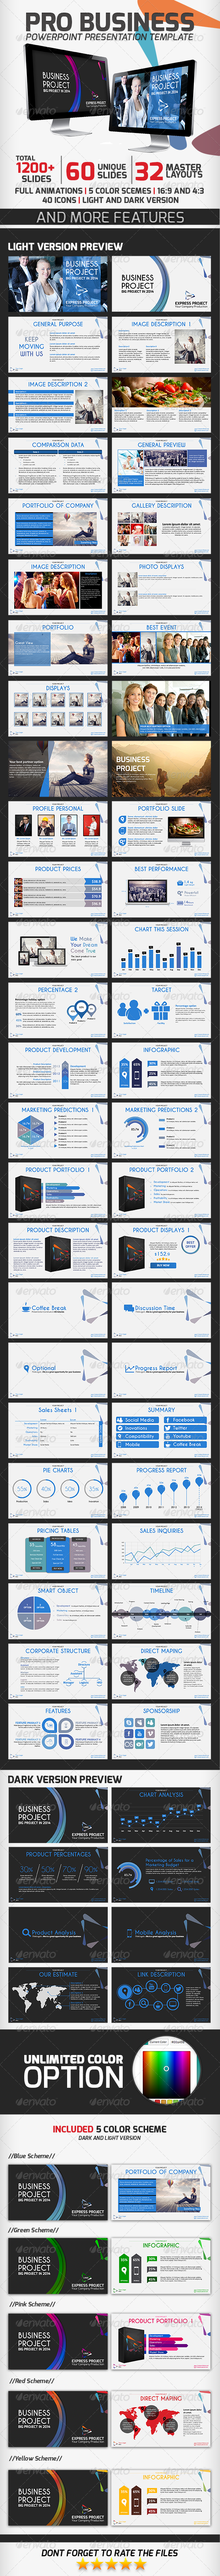 GraphicRiver Pro Business PowerPoint Presentation Template 6885198